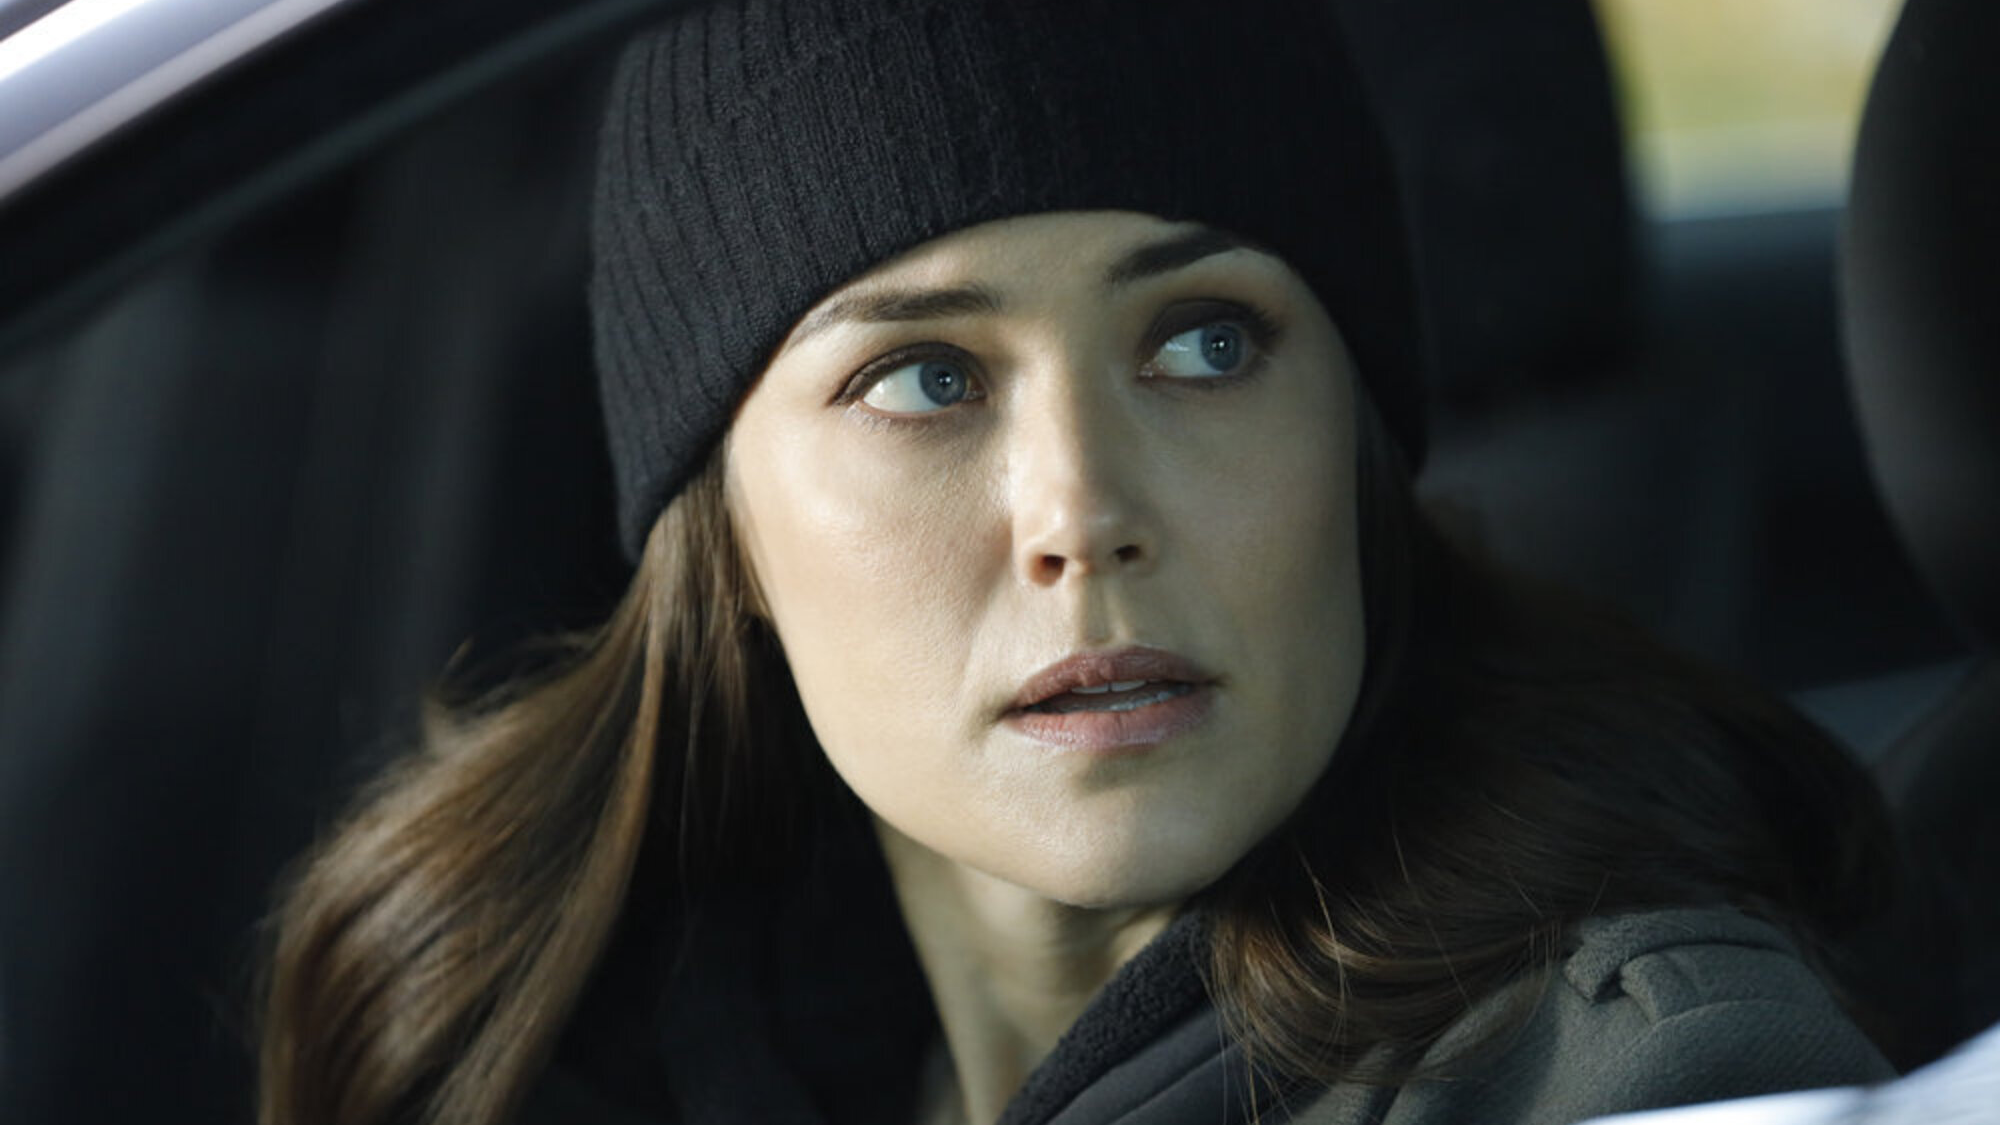 The Blacklist Elizabeth Liz Keen Megan Boone NBC